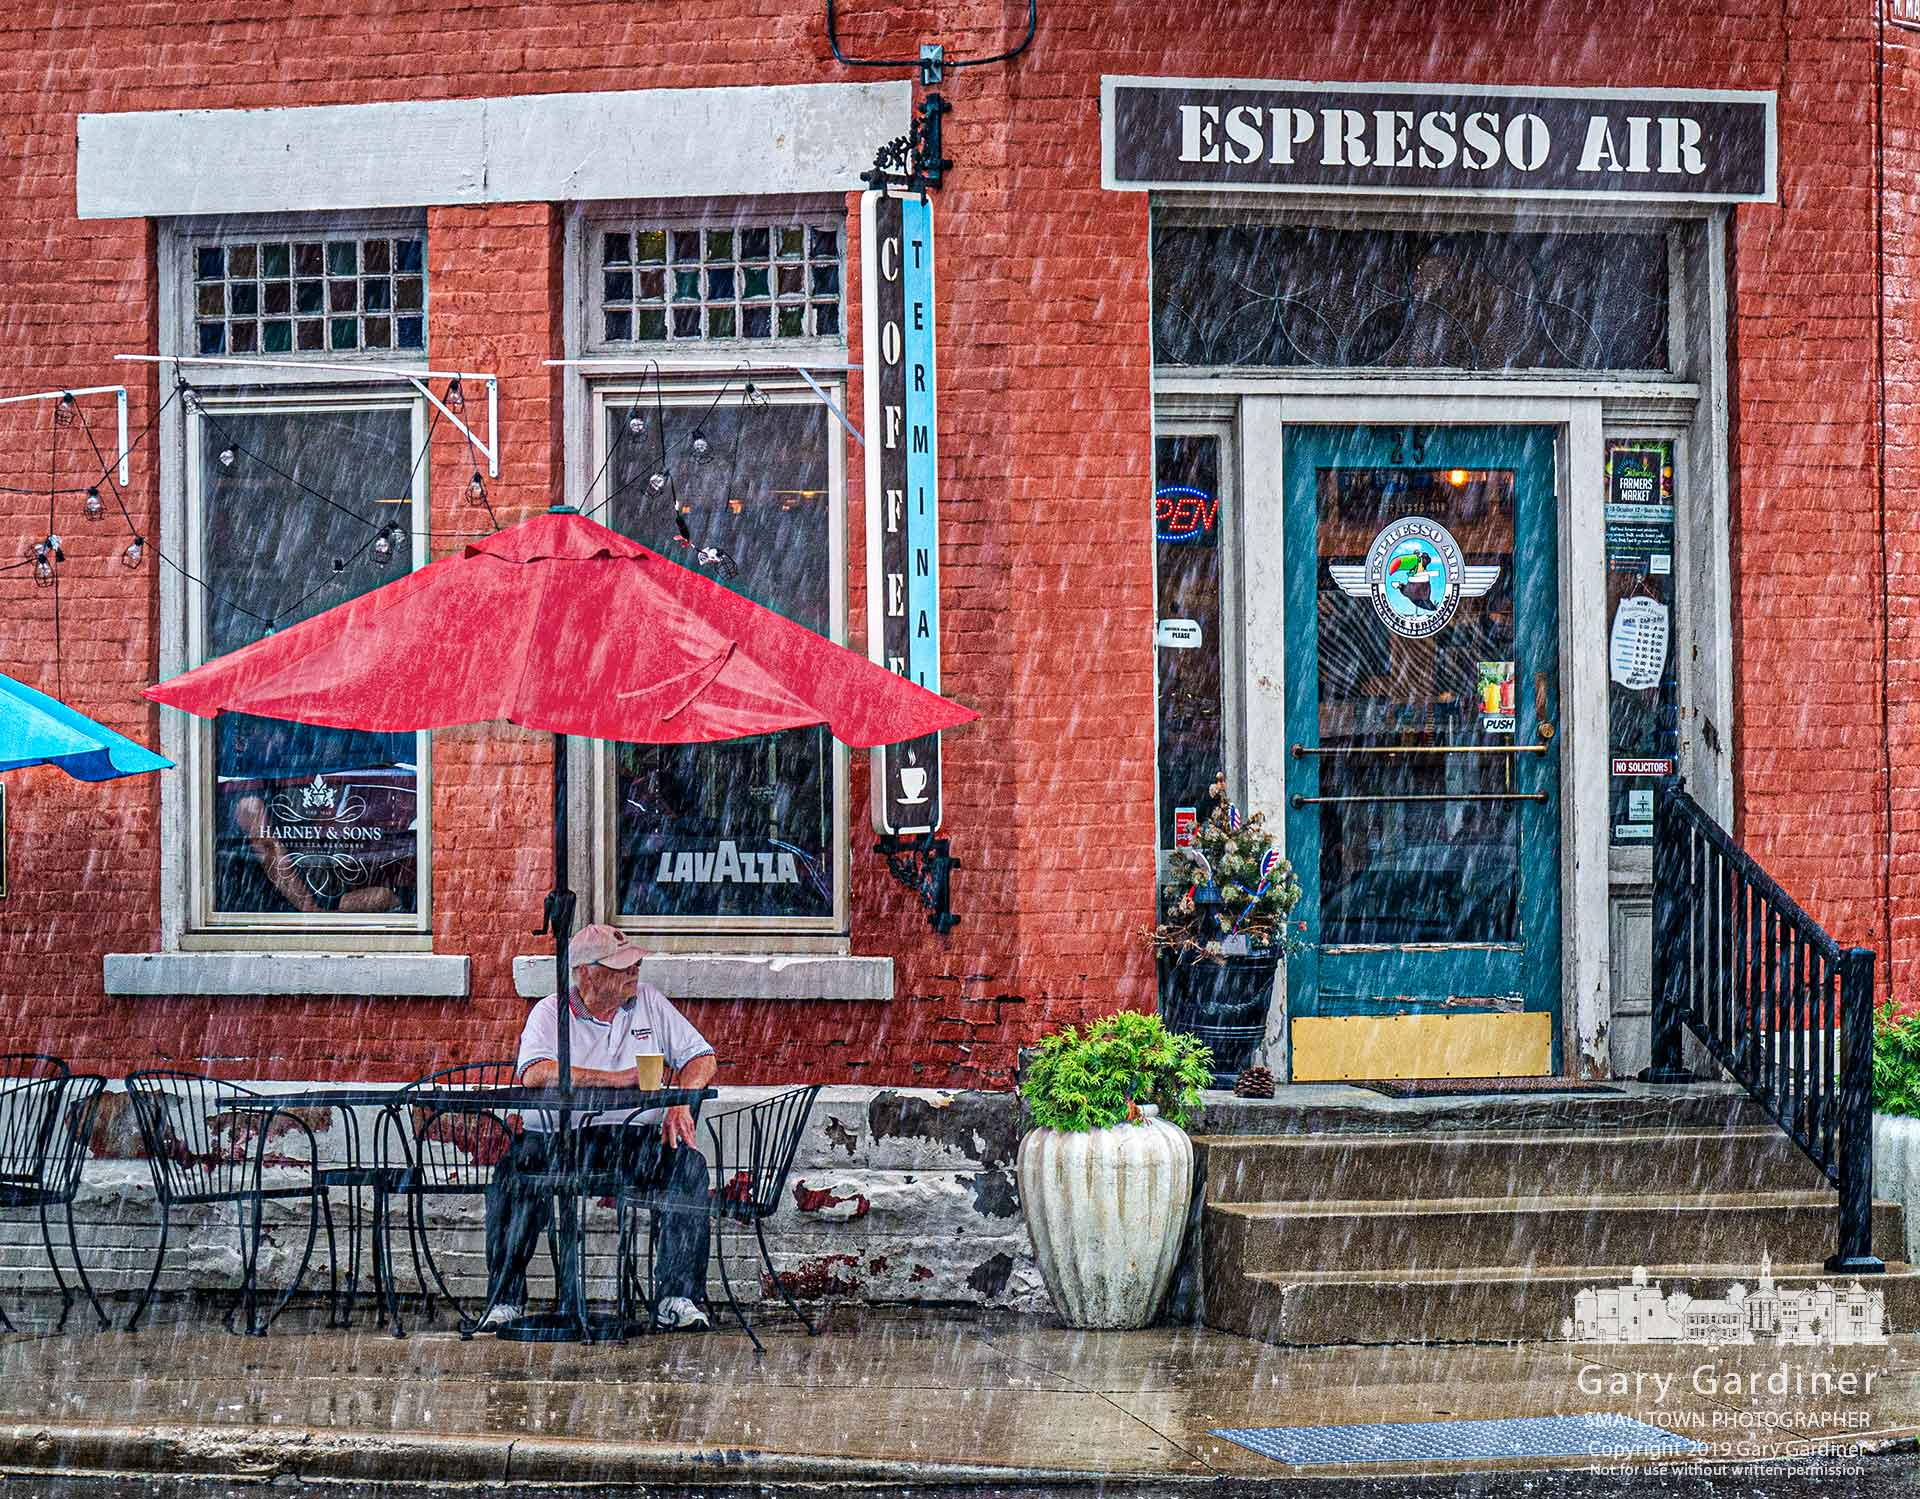 Uptown Dave with his coffee and cigar takes refuge from an afternoon rainstorm on the leeward side of the Holmes Hotel at State and Main in Uptown Westerville. My Final Photo for July 17, 2019.